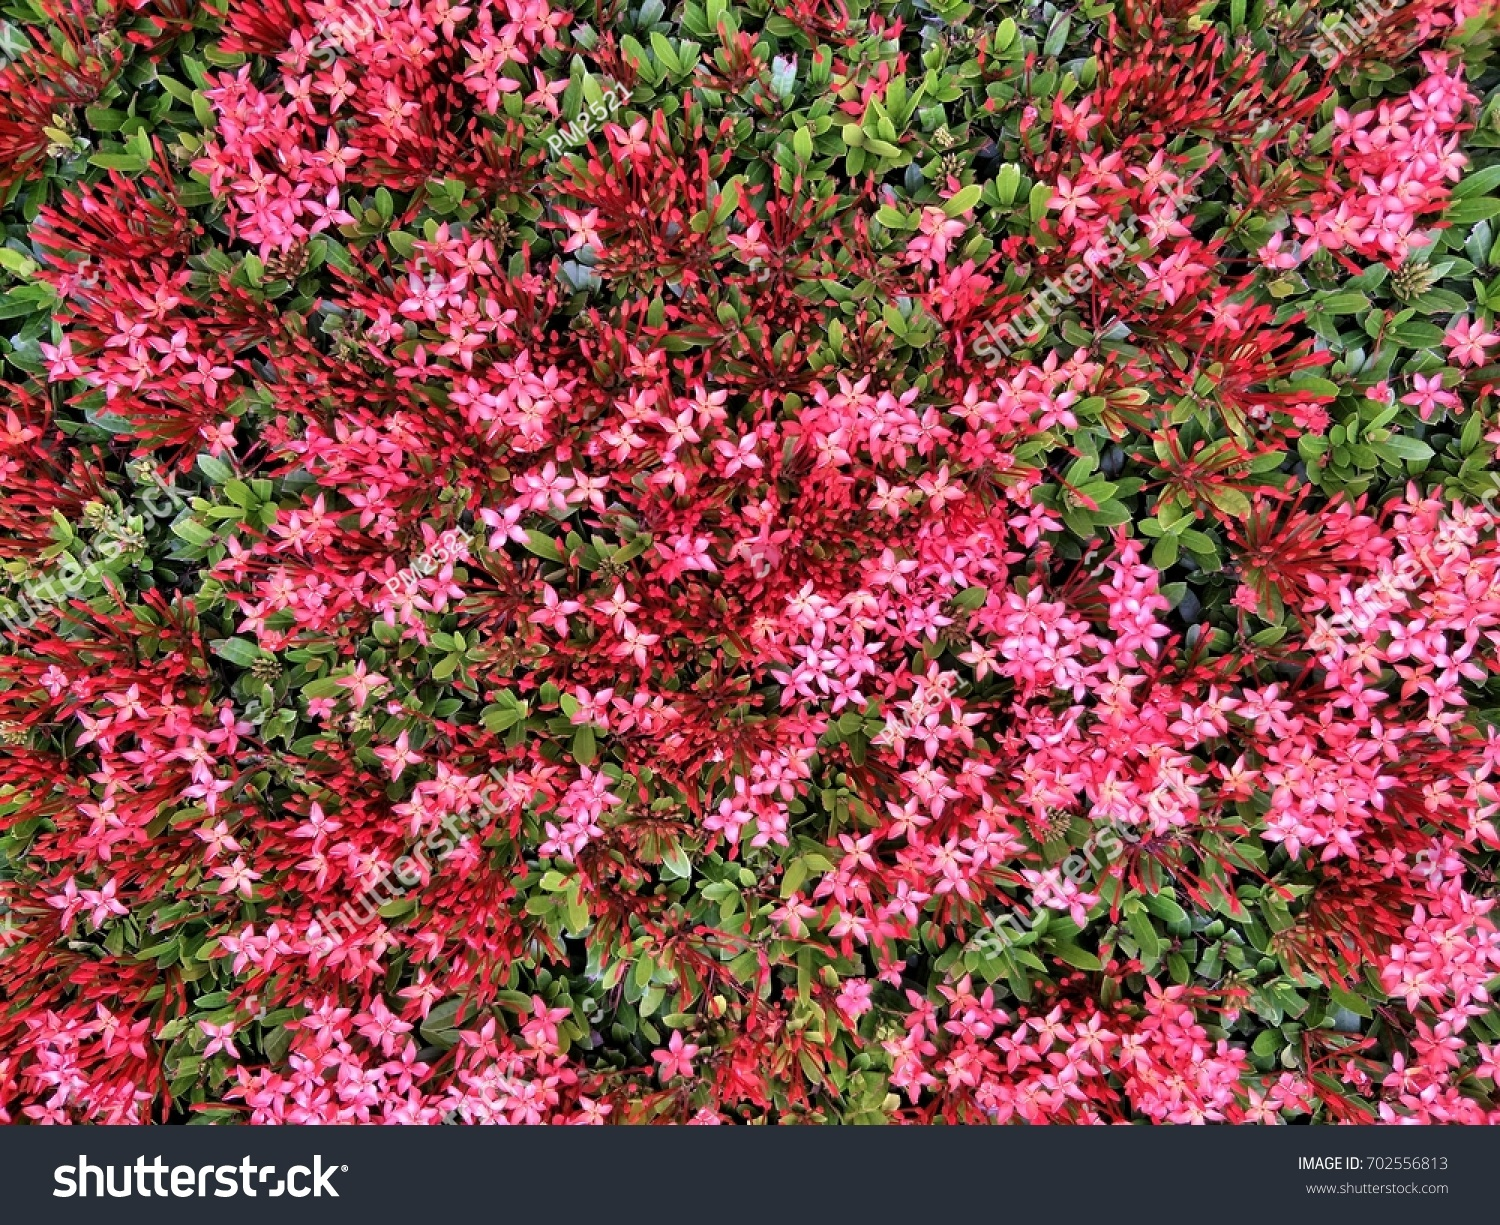 Red Pink Spike Flowers Stock Photo Edit Now 702556813 Shutterstock